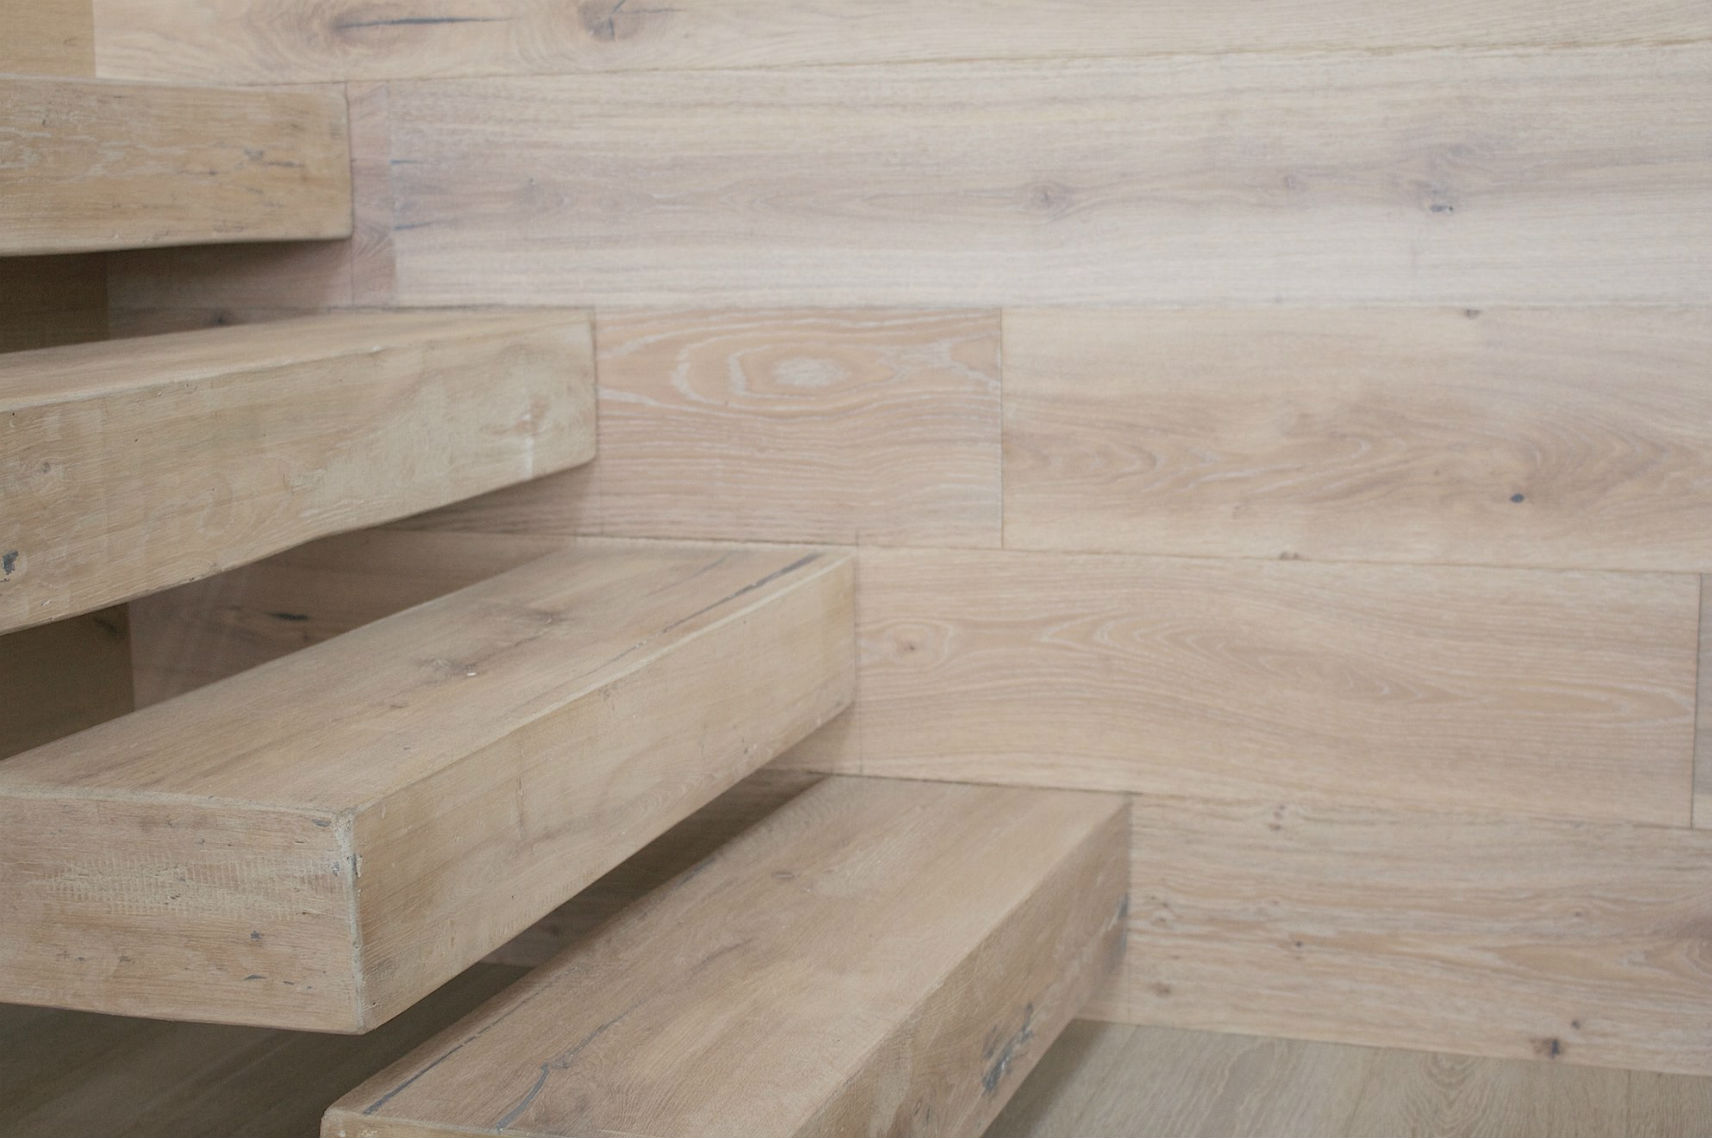 Timber Stair Treads Video Slip Resistance Stair Nosing Non Slippery